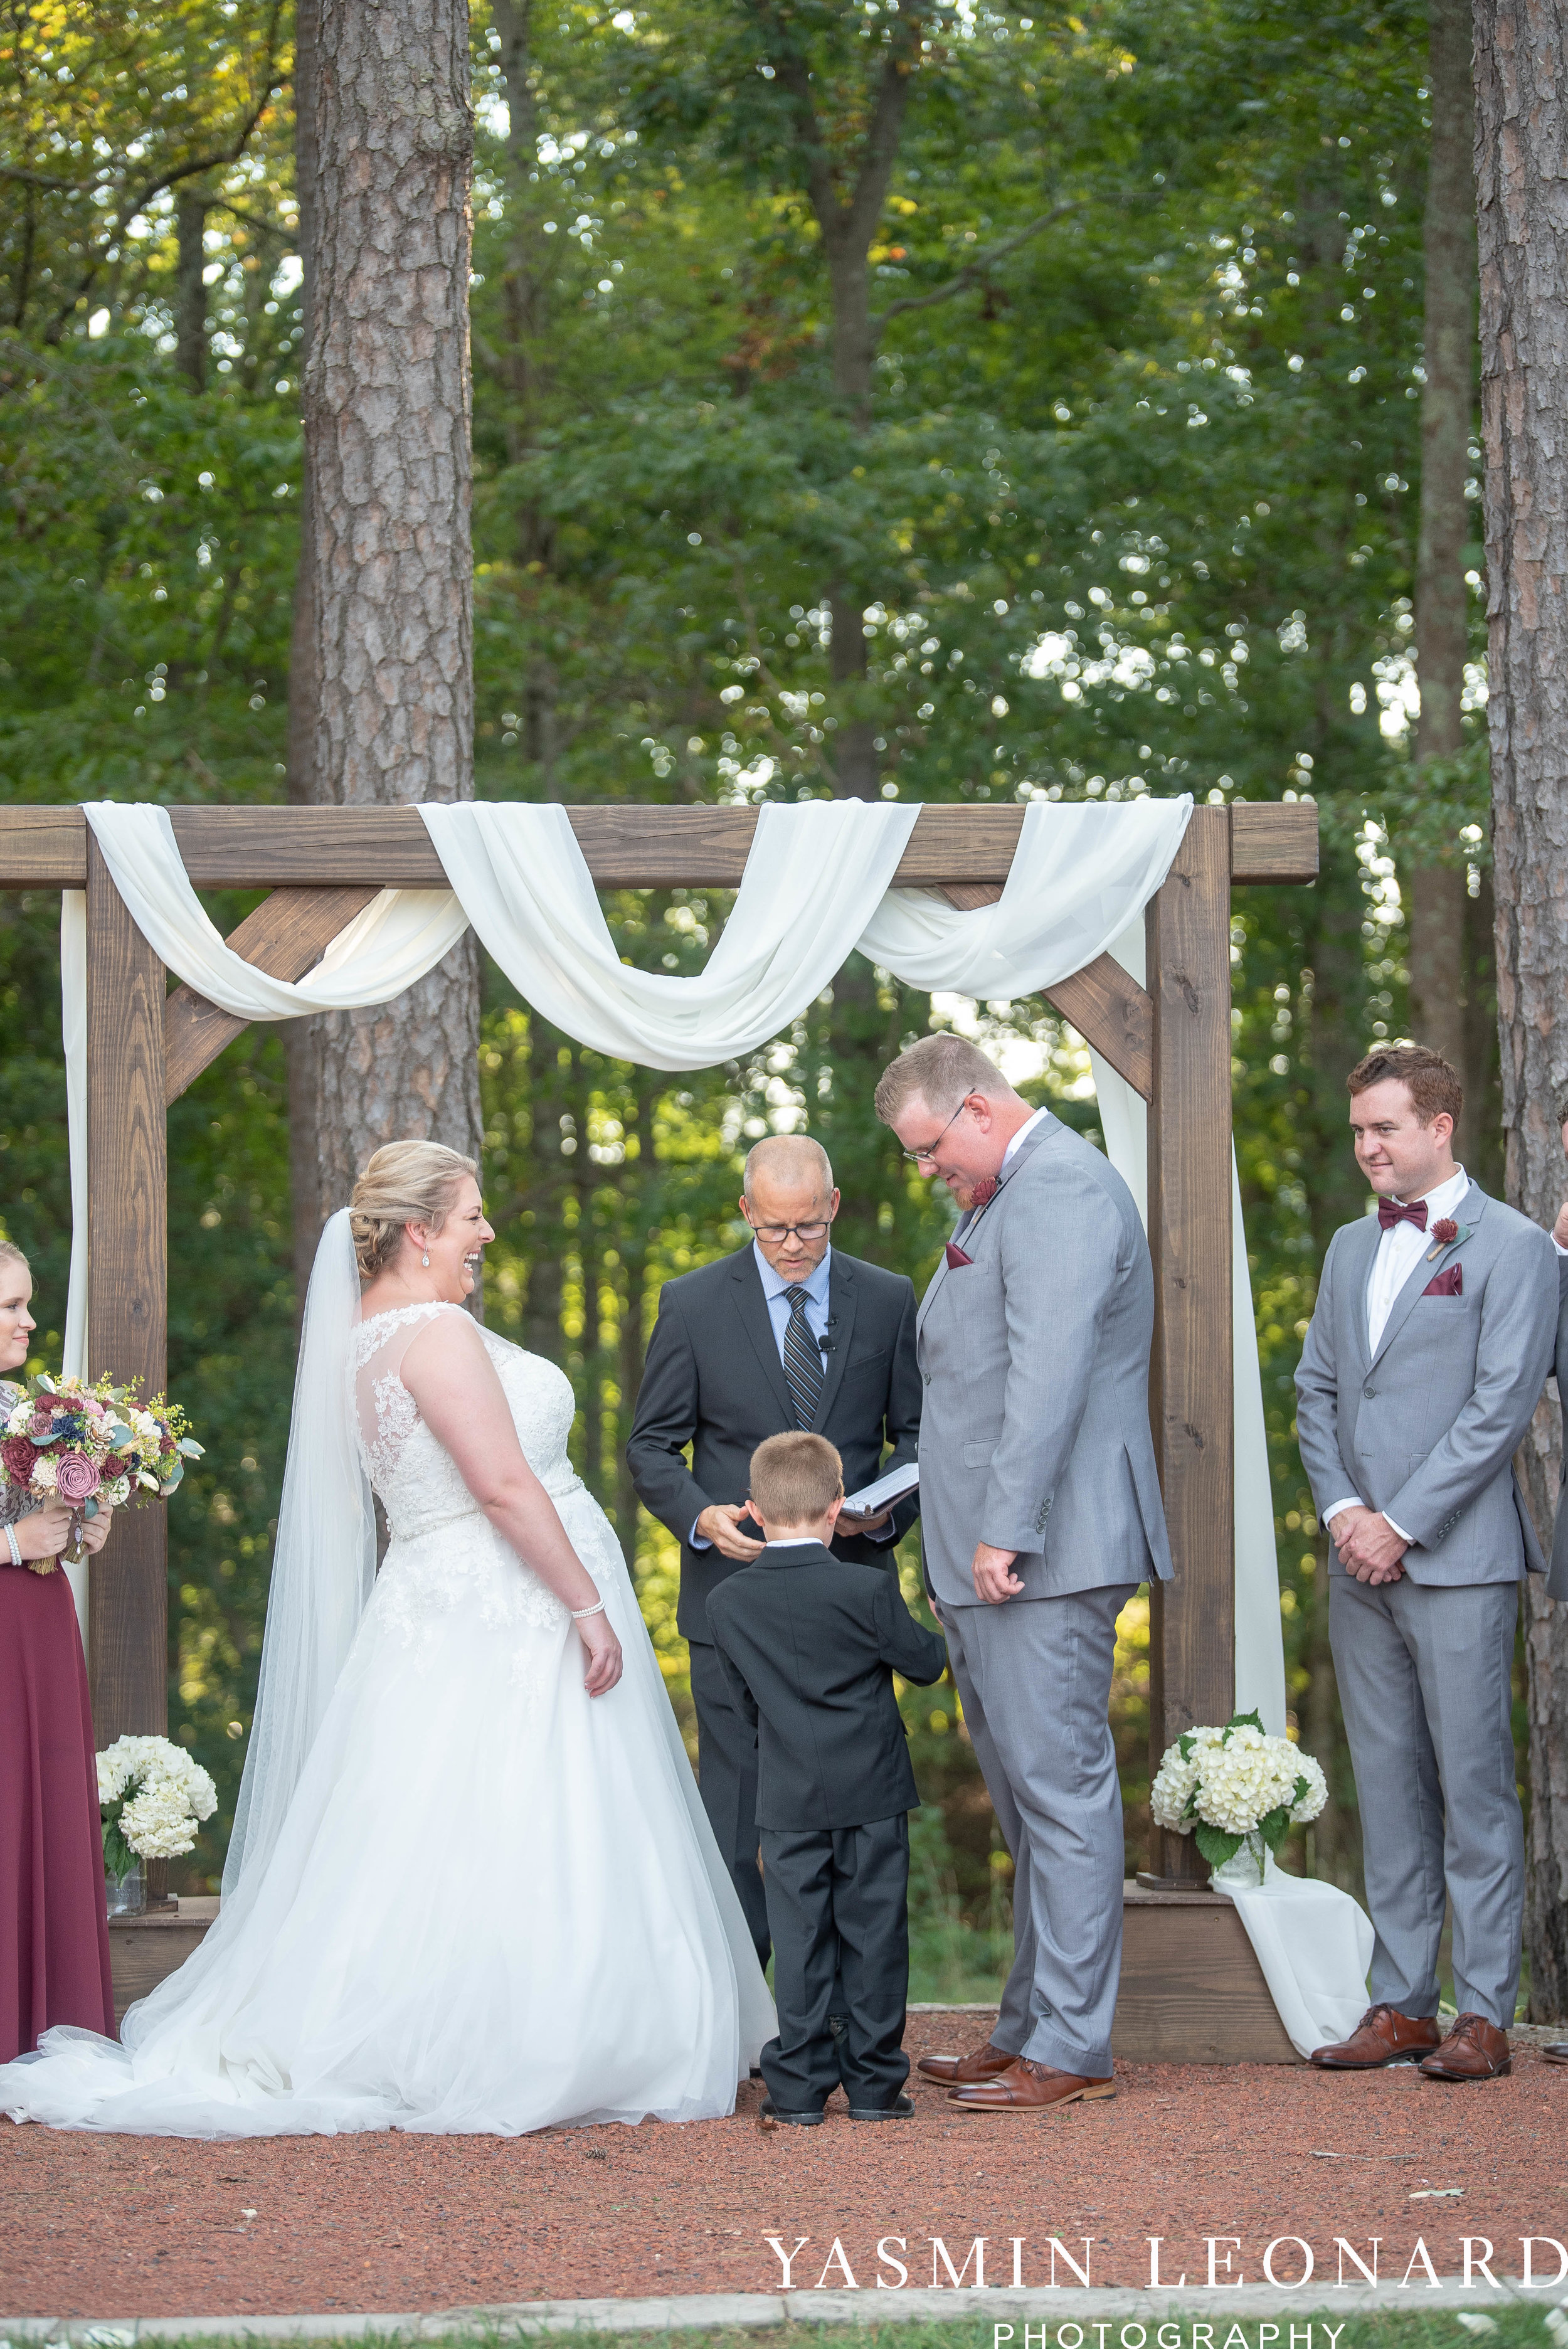 Danner Farms - NC Wedding Venues - NC Barns - Statesville NC - NC Wedding Photographer - High Point Wedding Photographer - Yasmin Leonard Photography-36.jpg